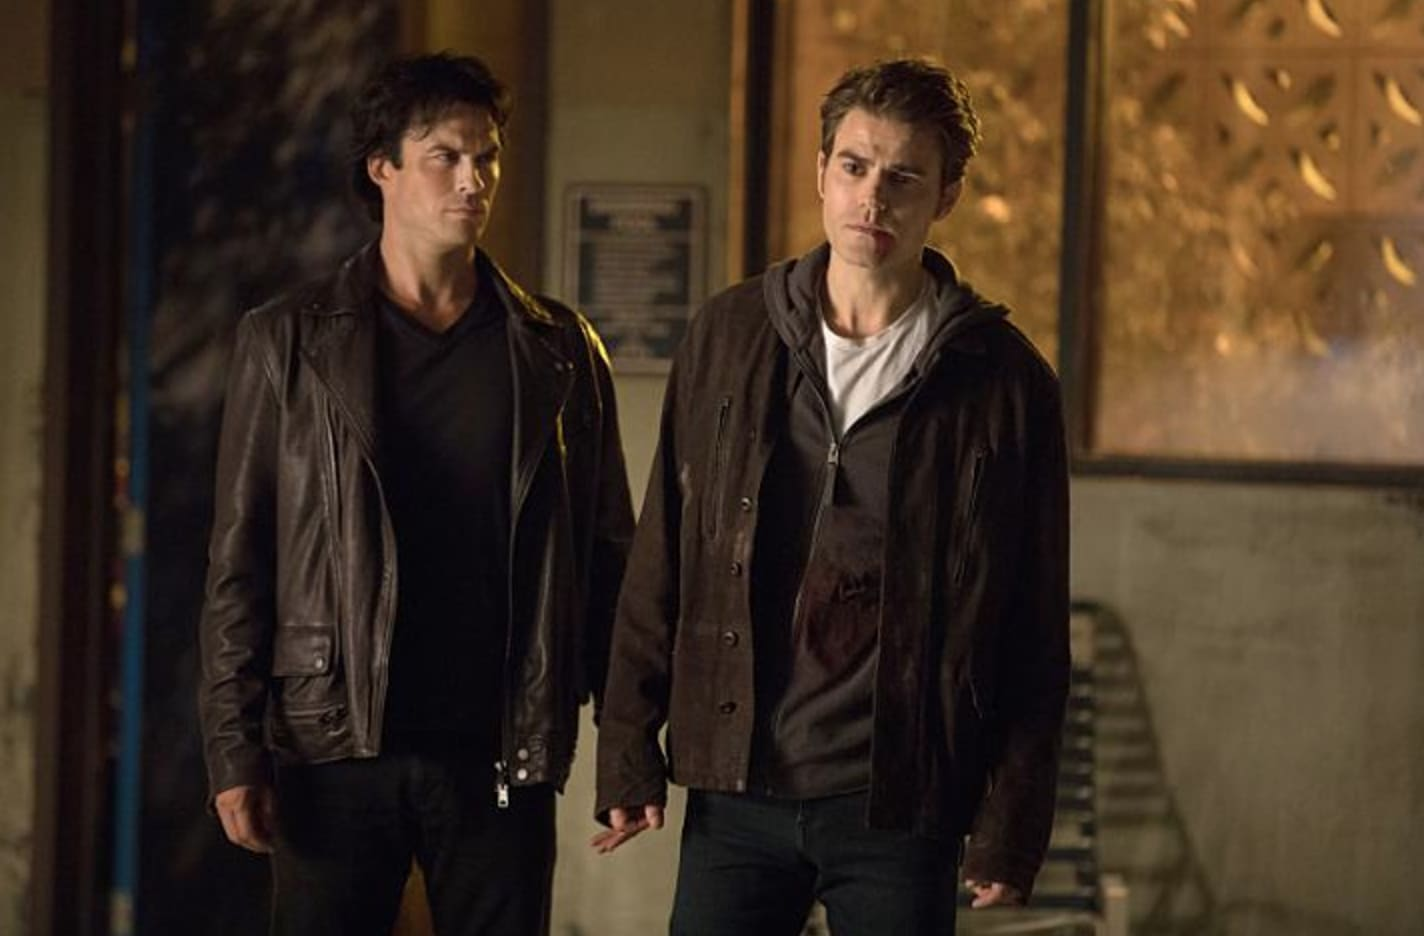 watch vampire diaries season 8 episode 6 online free